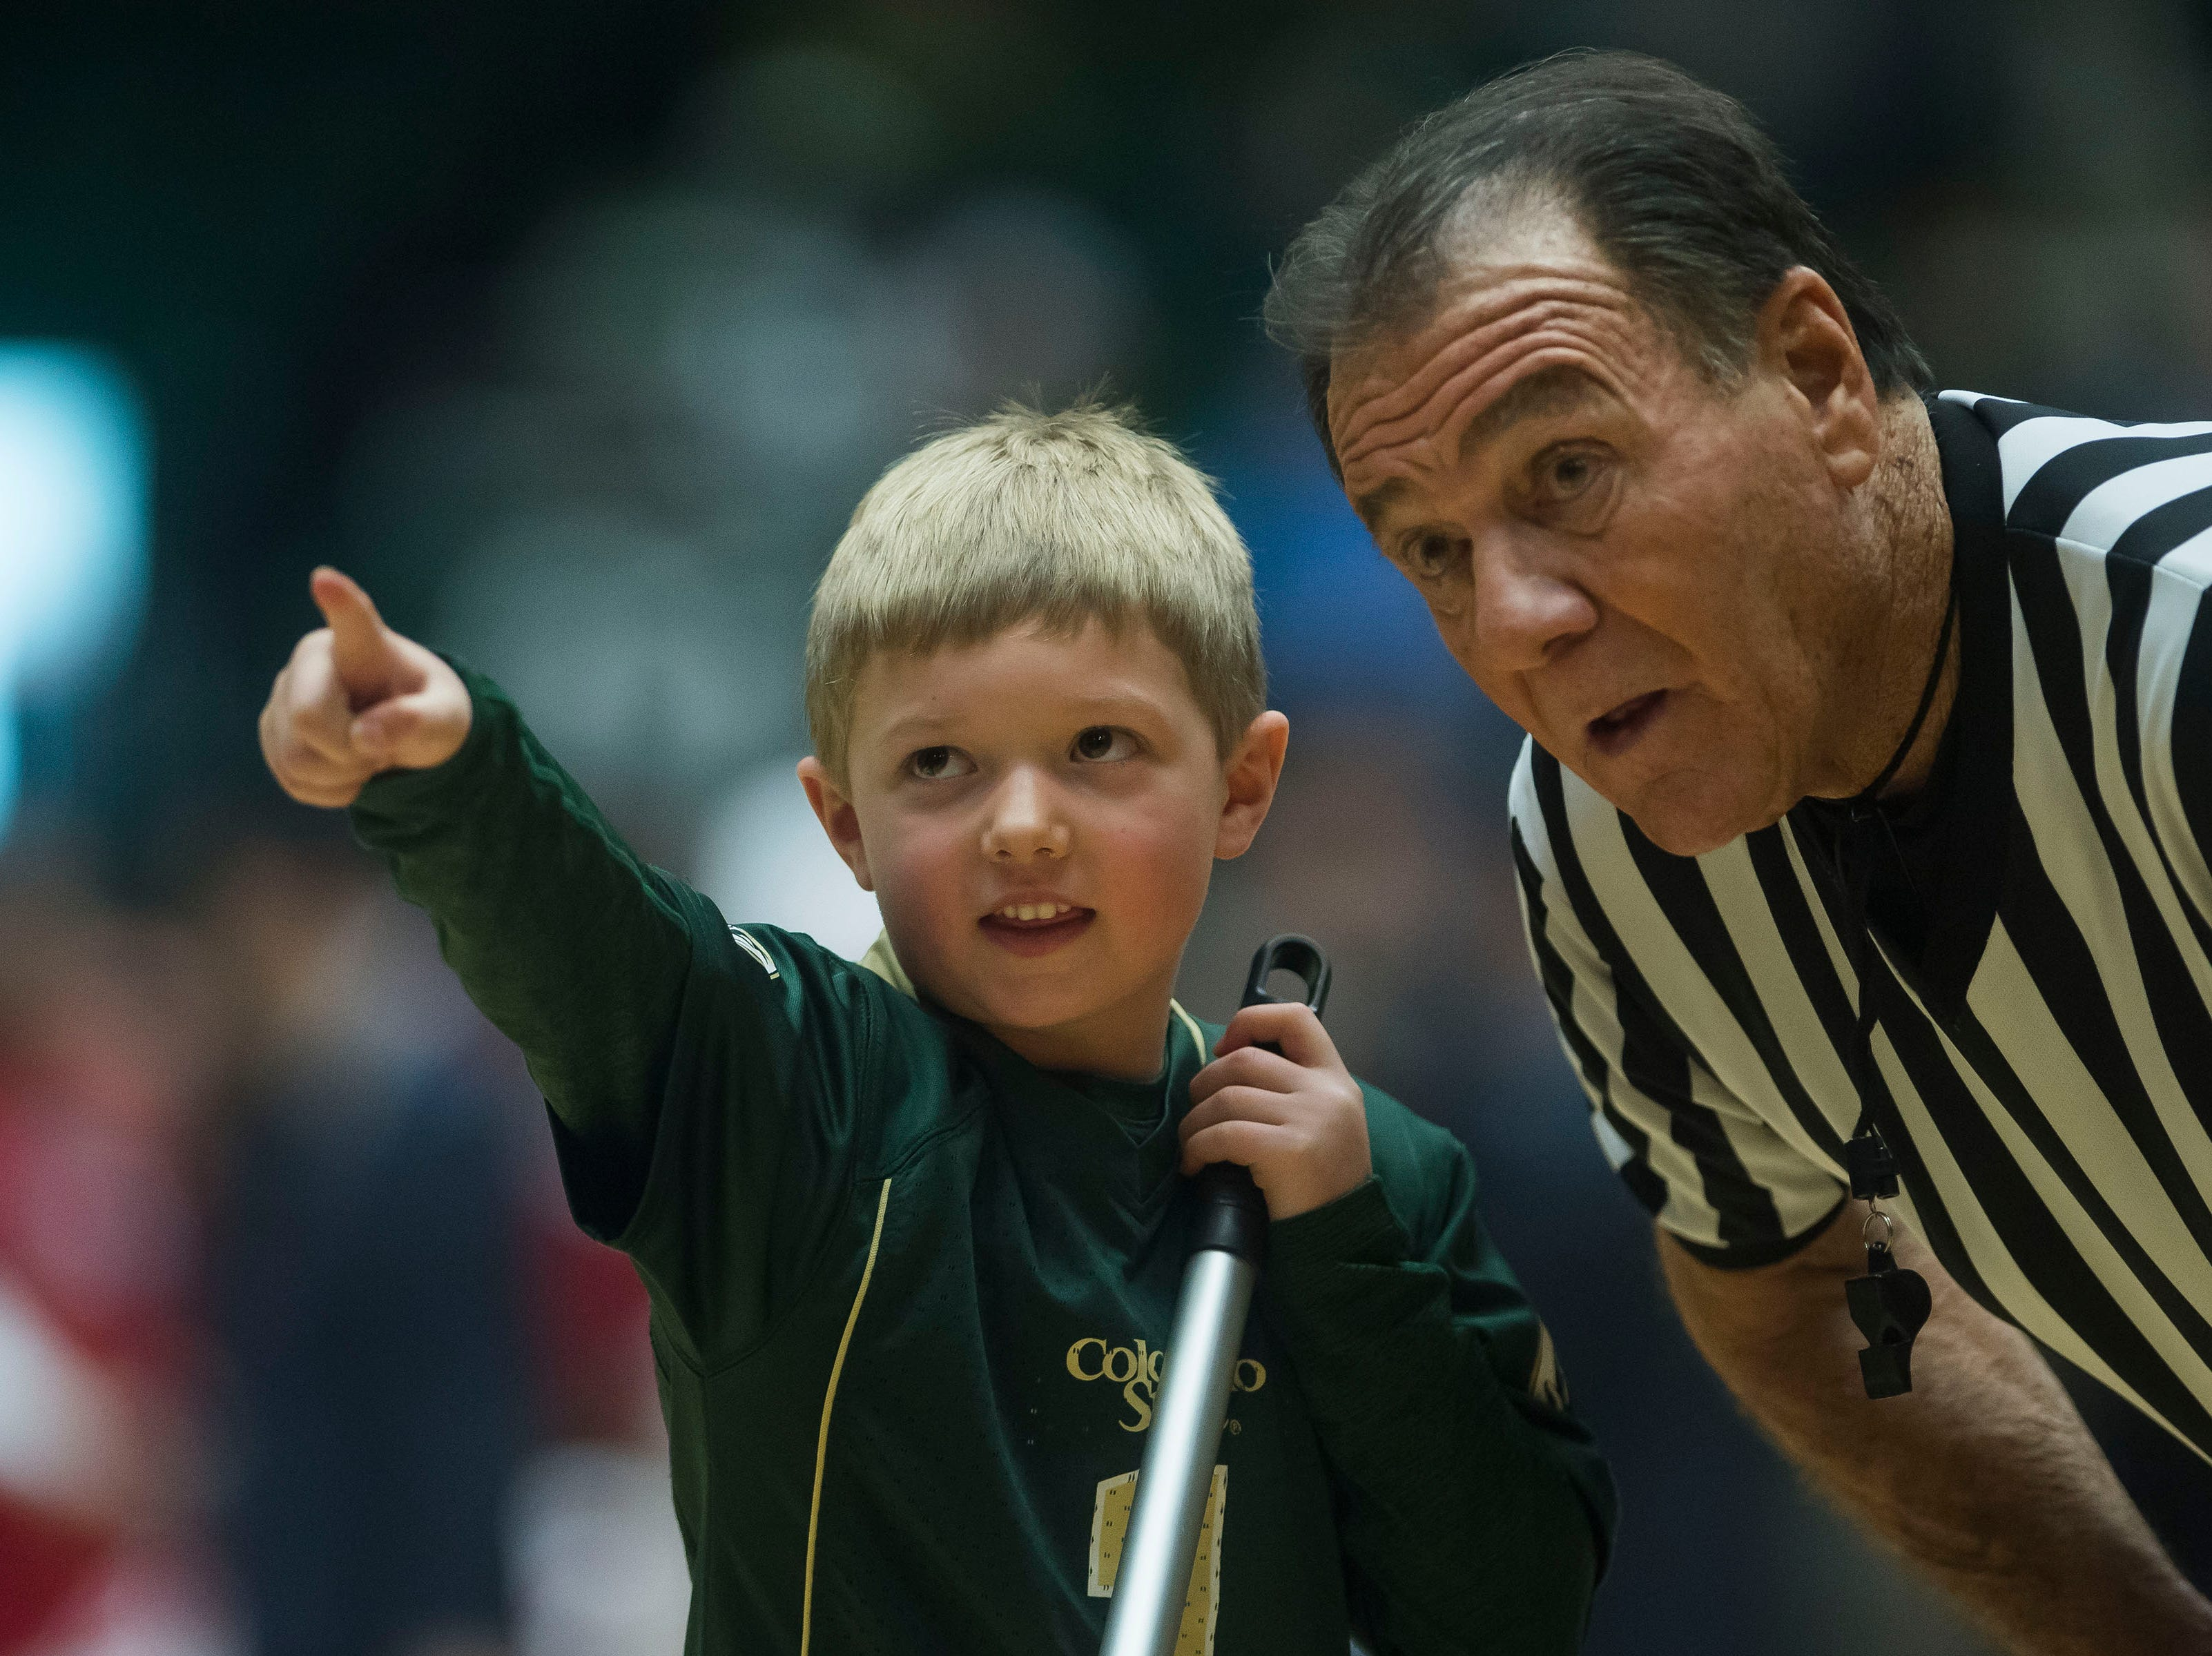 An official take notice of what a mop boy points out during a game between Colorado State University and University of Nevada, Las Vegas on Saturday, March 9, 2019, at Moby Arena in Fort Collins, Colo.